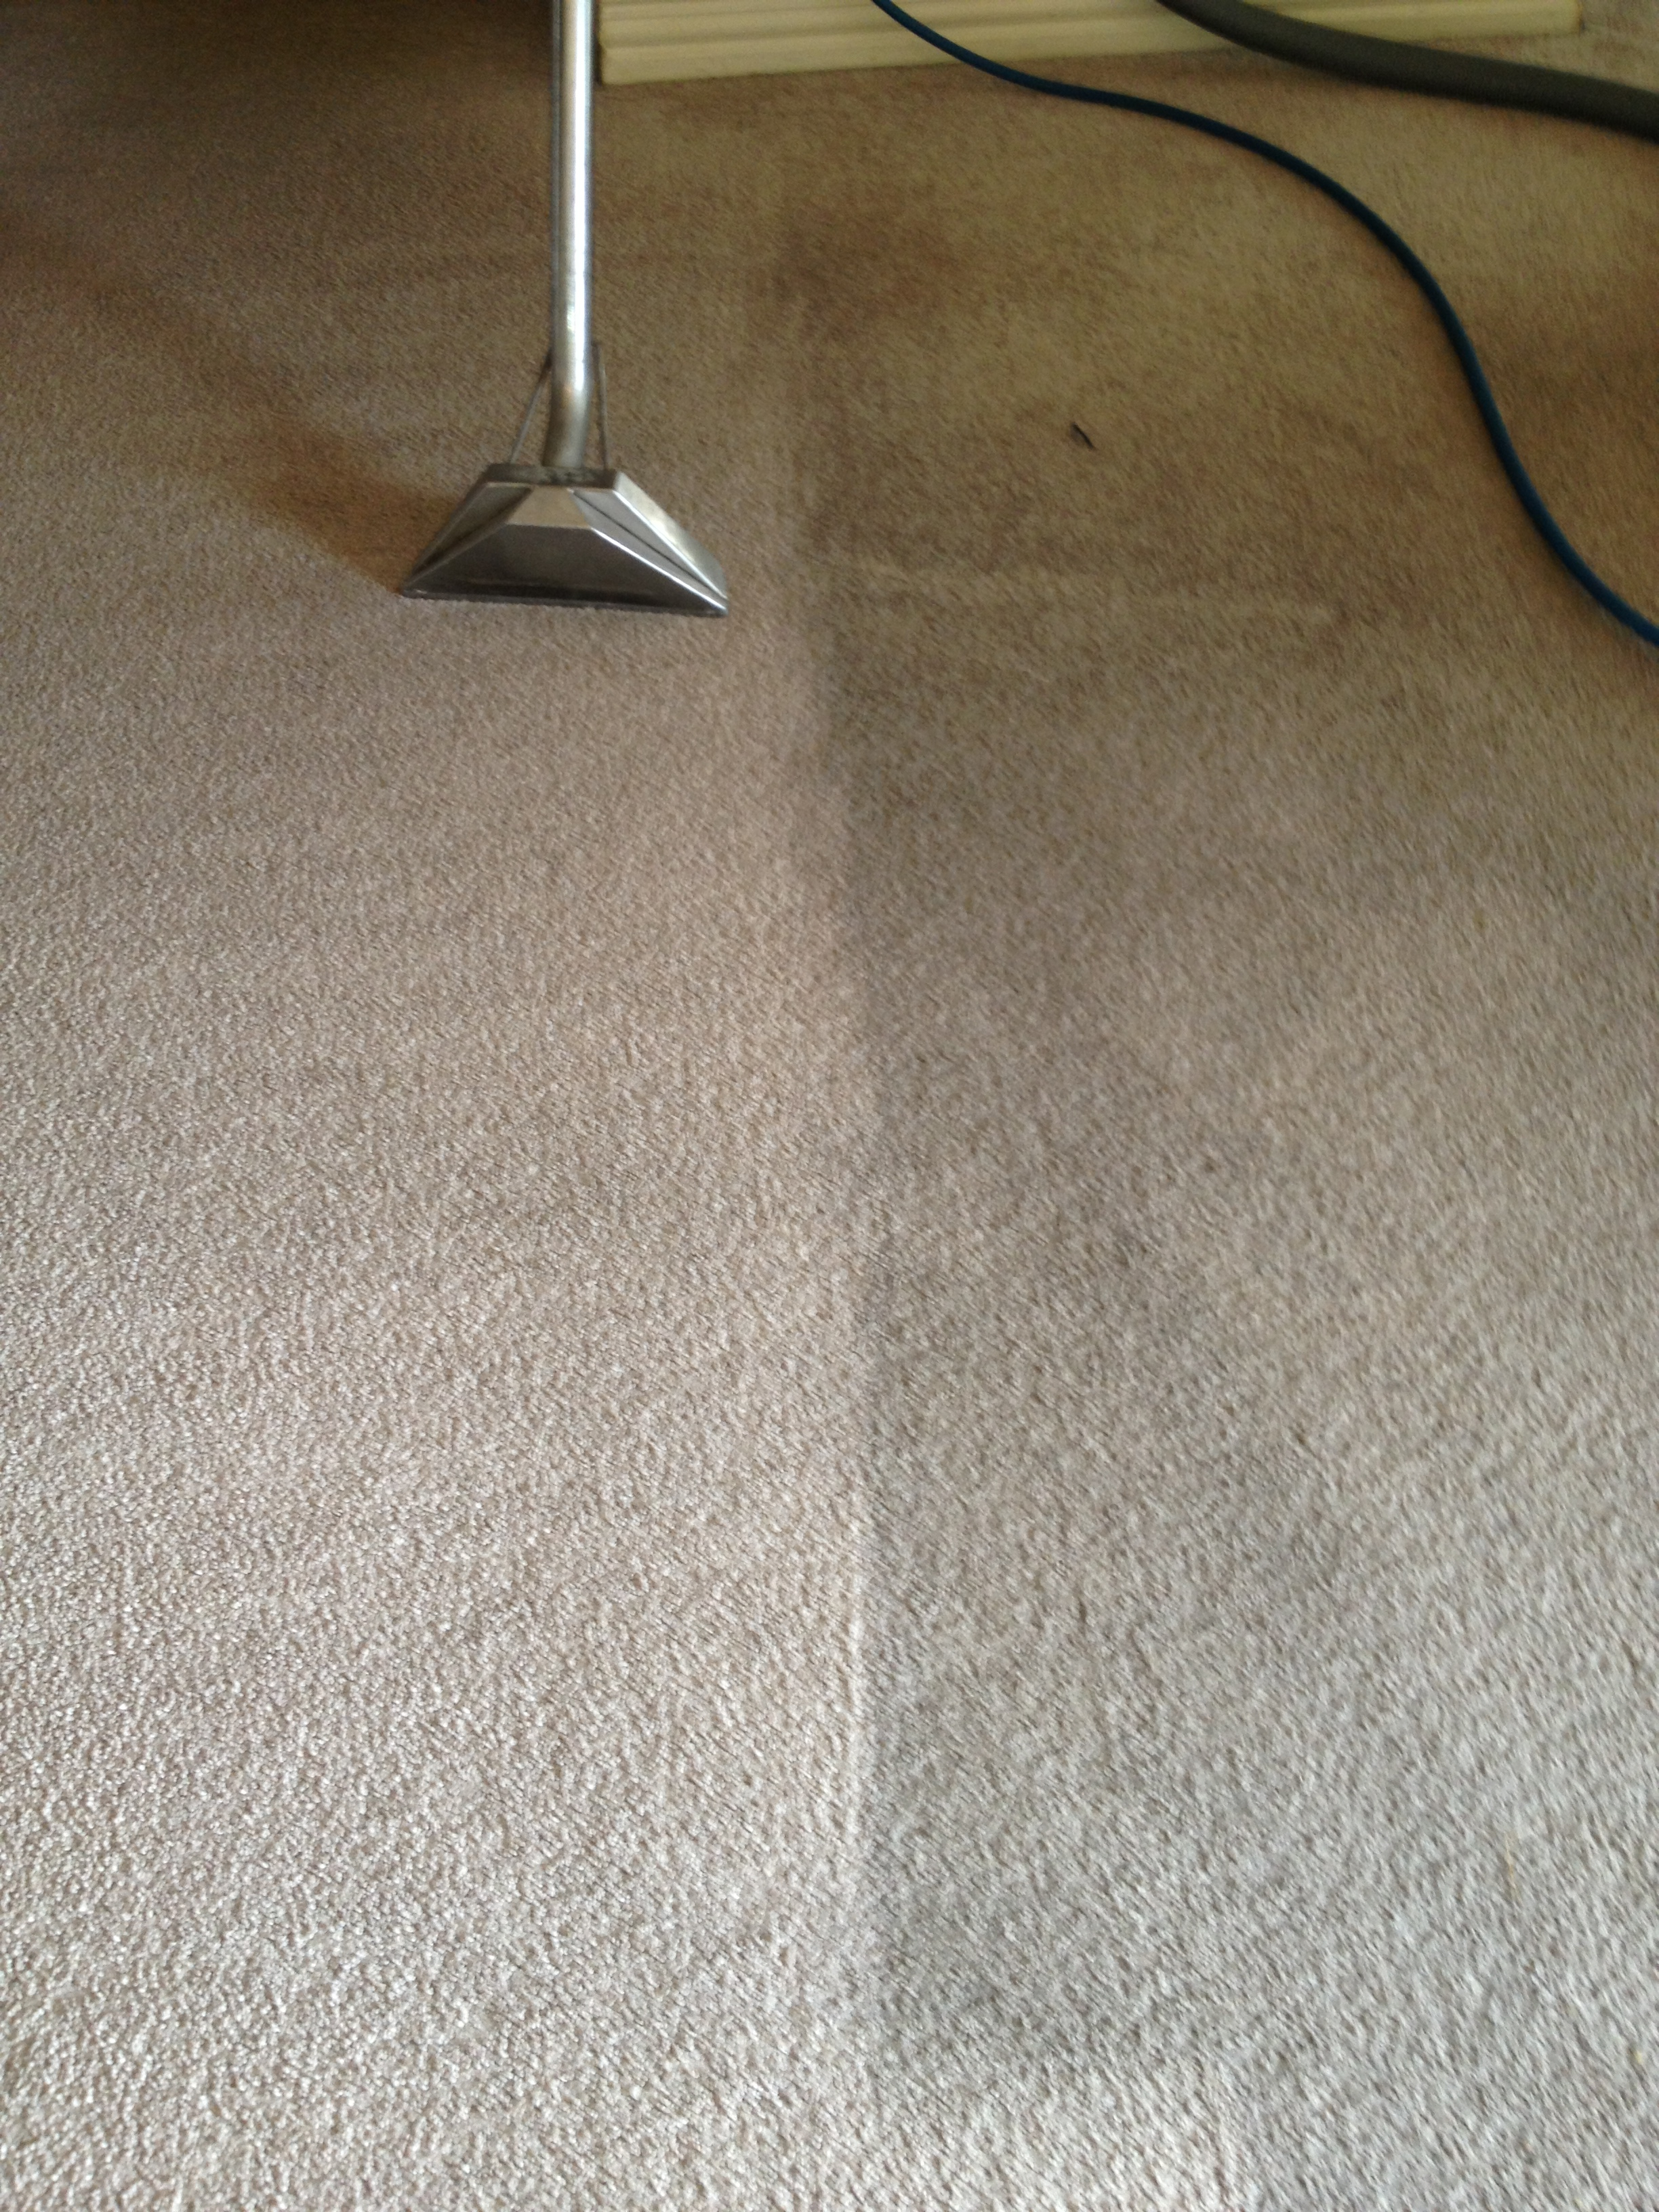 Flooring Services Texas : Why vacuuming your carpet is important cleaning